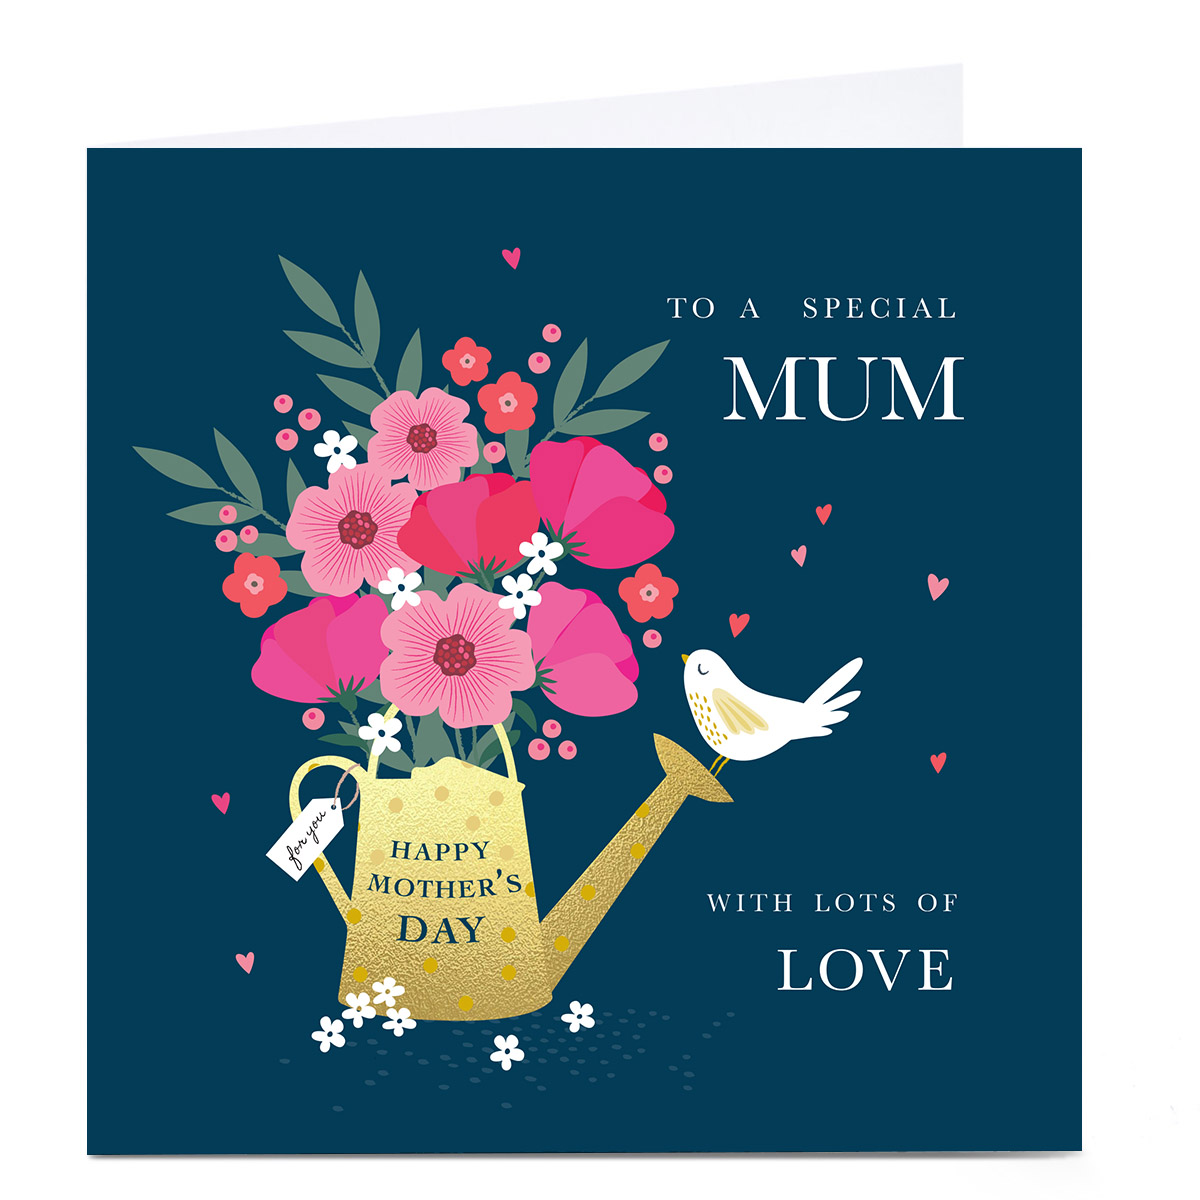 OL0283 Klara Hawkins Mother's Day Card 6